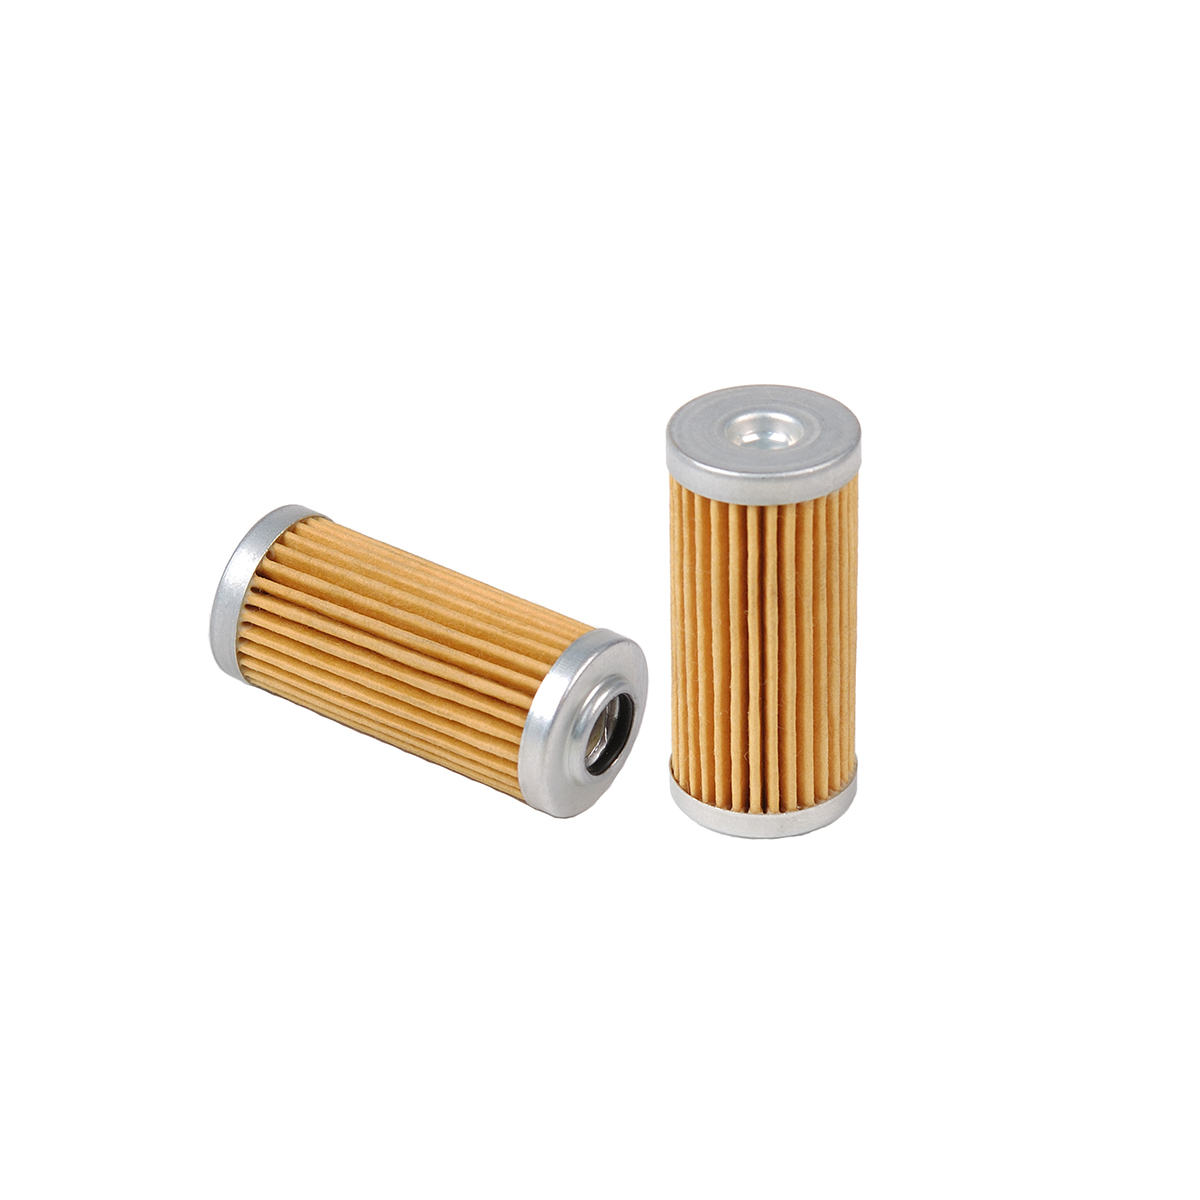 Fuel Filter Kit Evasive Motorsports Aeromotive Replacement 40 Micron Fabric Element For 12303 Assembly